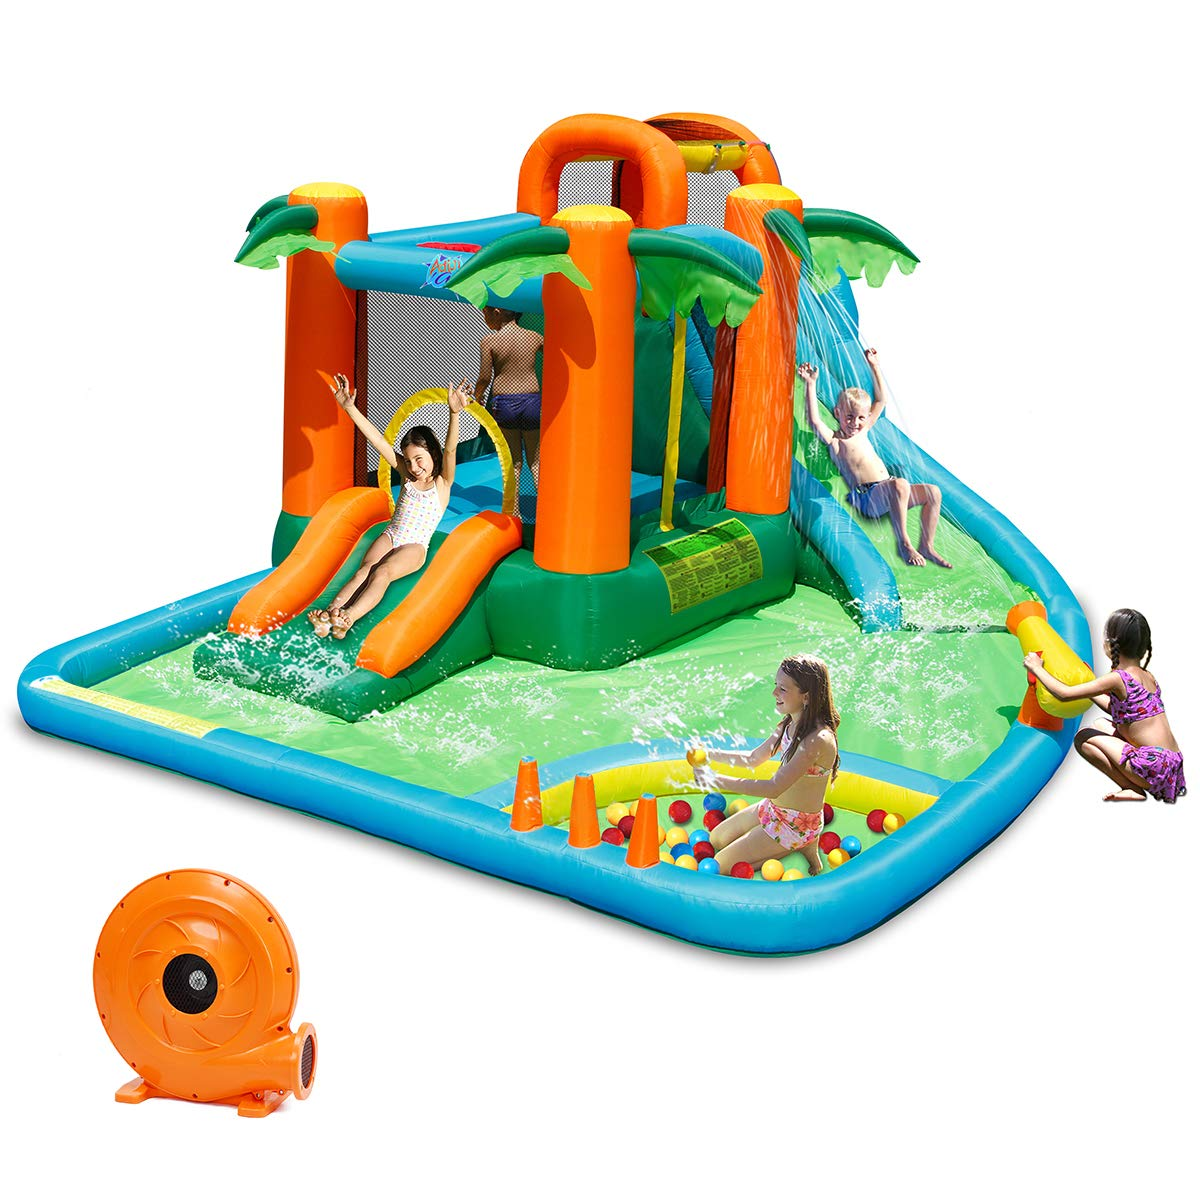 Costzon Inflatable Bounce House, 7 in 1 Jungle Jump Bounce Pool with Two Slides, Climbing Wall, Basketball Rim, Splash Pool, Water Cannon, Including Repairing Kit, Stakes, Ocean Ball, 780W Air Blower by Costzon